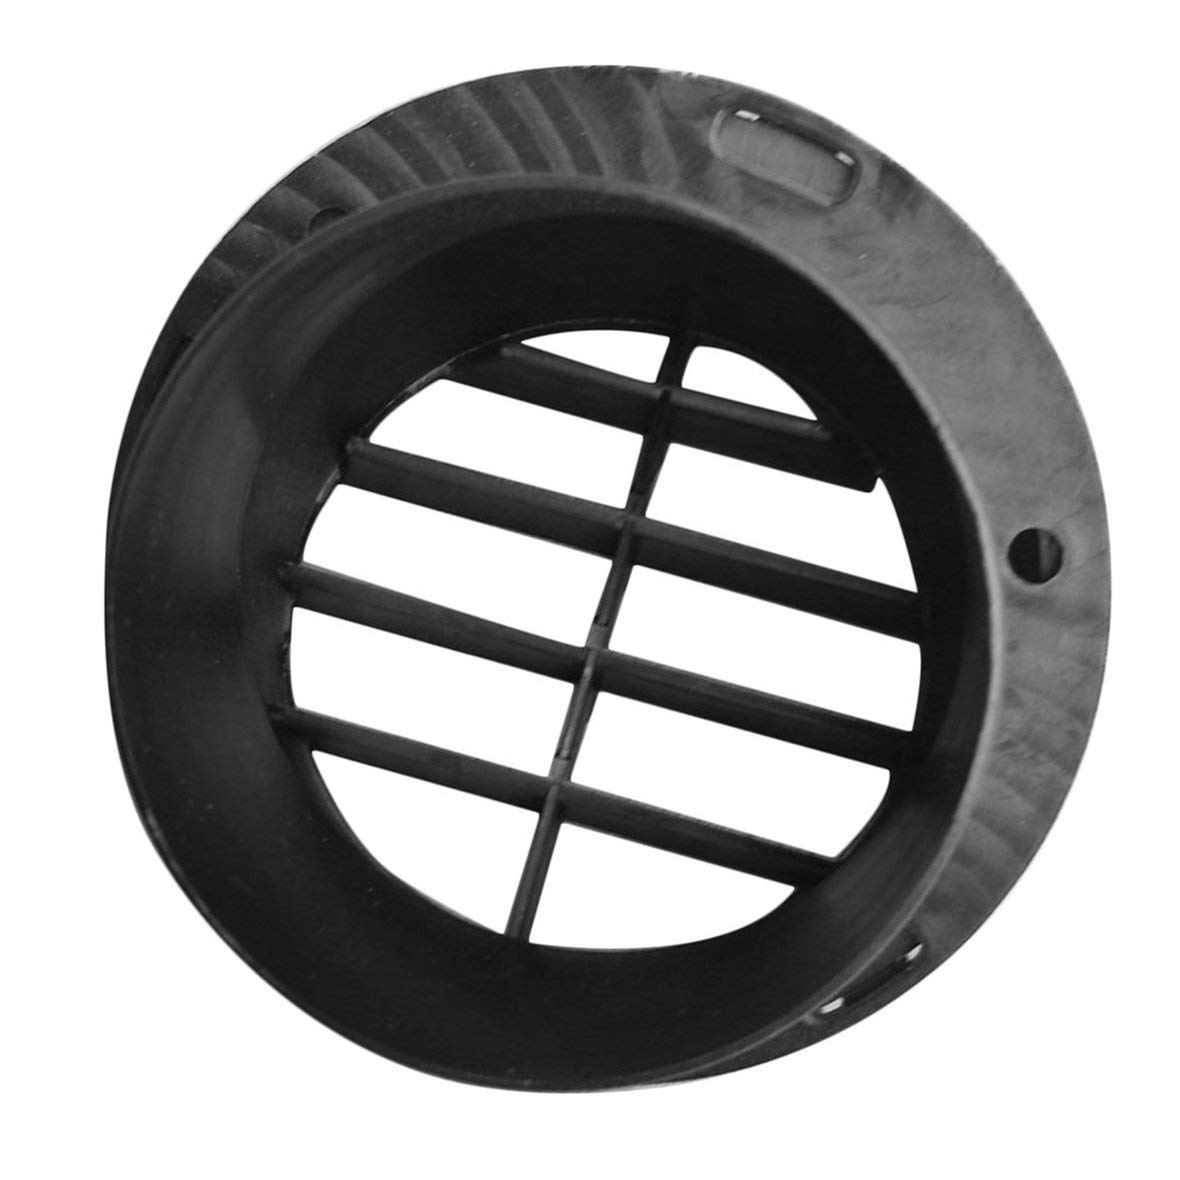 Tivolii Car Heater Vent Outlet 60mm(2.362inch) Warm Heater Parking Heater Air Vent Car Heater Air Outlet Directional Rotatable for Webasto Truck Auto Parts